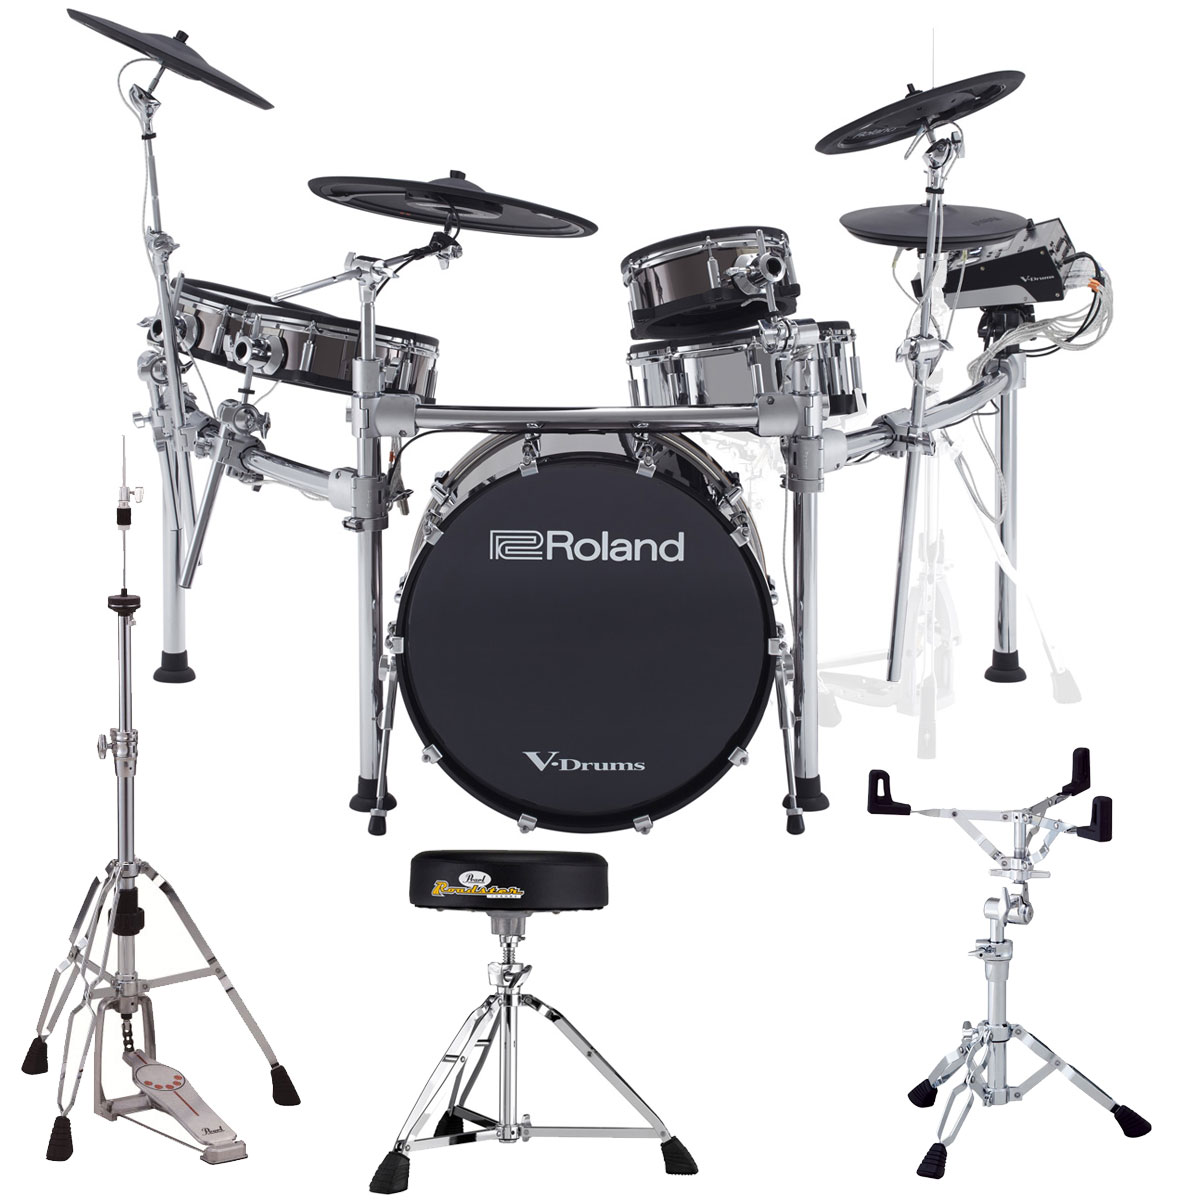 【Rolandキャッシュバック10000円対象】【タイムセール:29日12時まで】Roland Drum System TD-50KVX PEARL HARDWARE SET 【YRK】